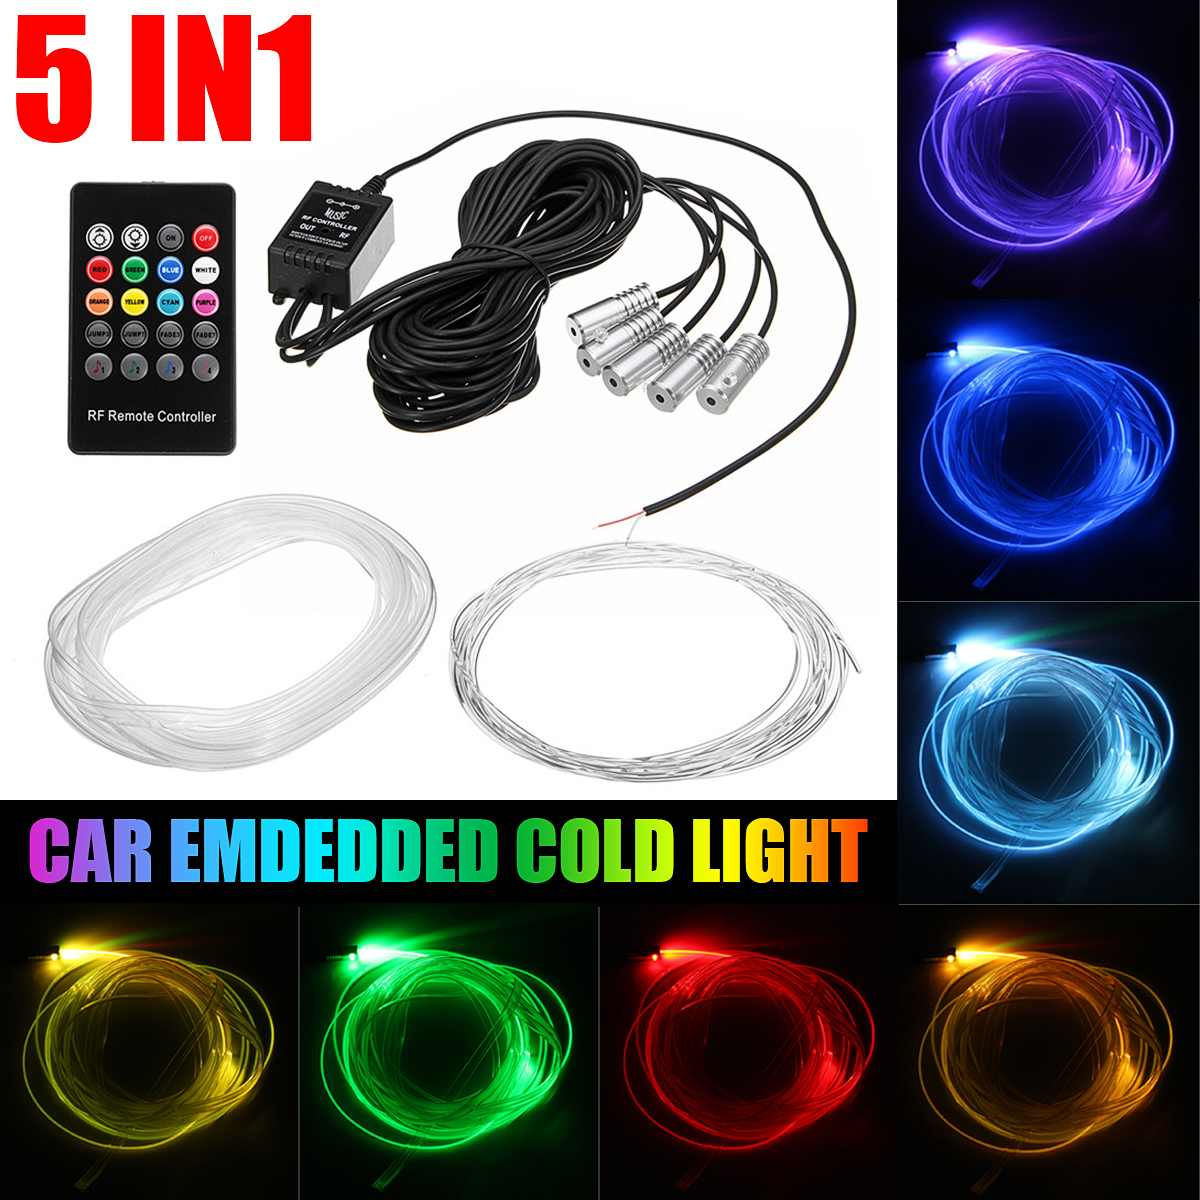 5 in1 5050 LED Car Interior Atmosphere Strip Light 12V remote control Fiber Optic Neon Car LED RGB Light Strip Kit Accessories image